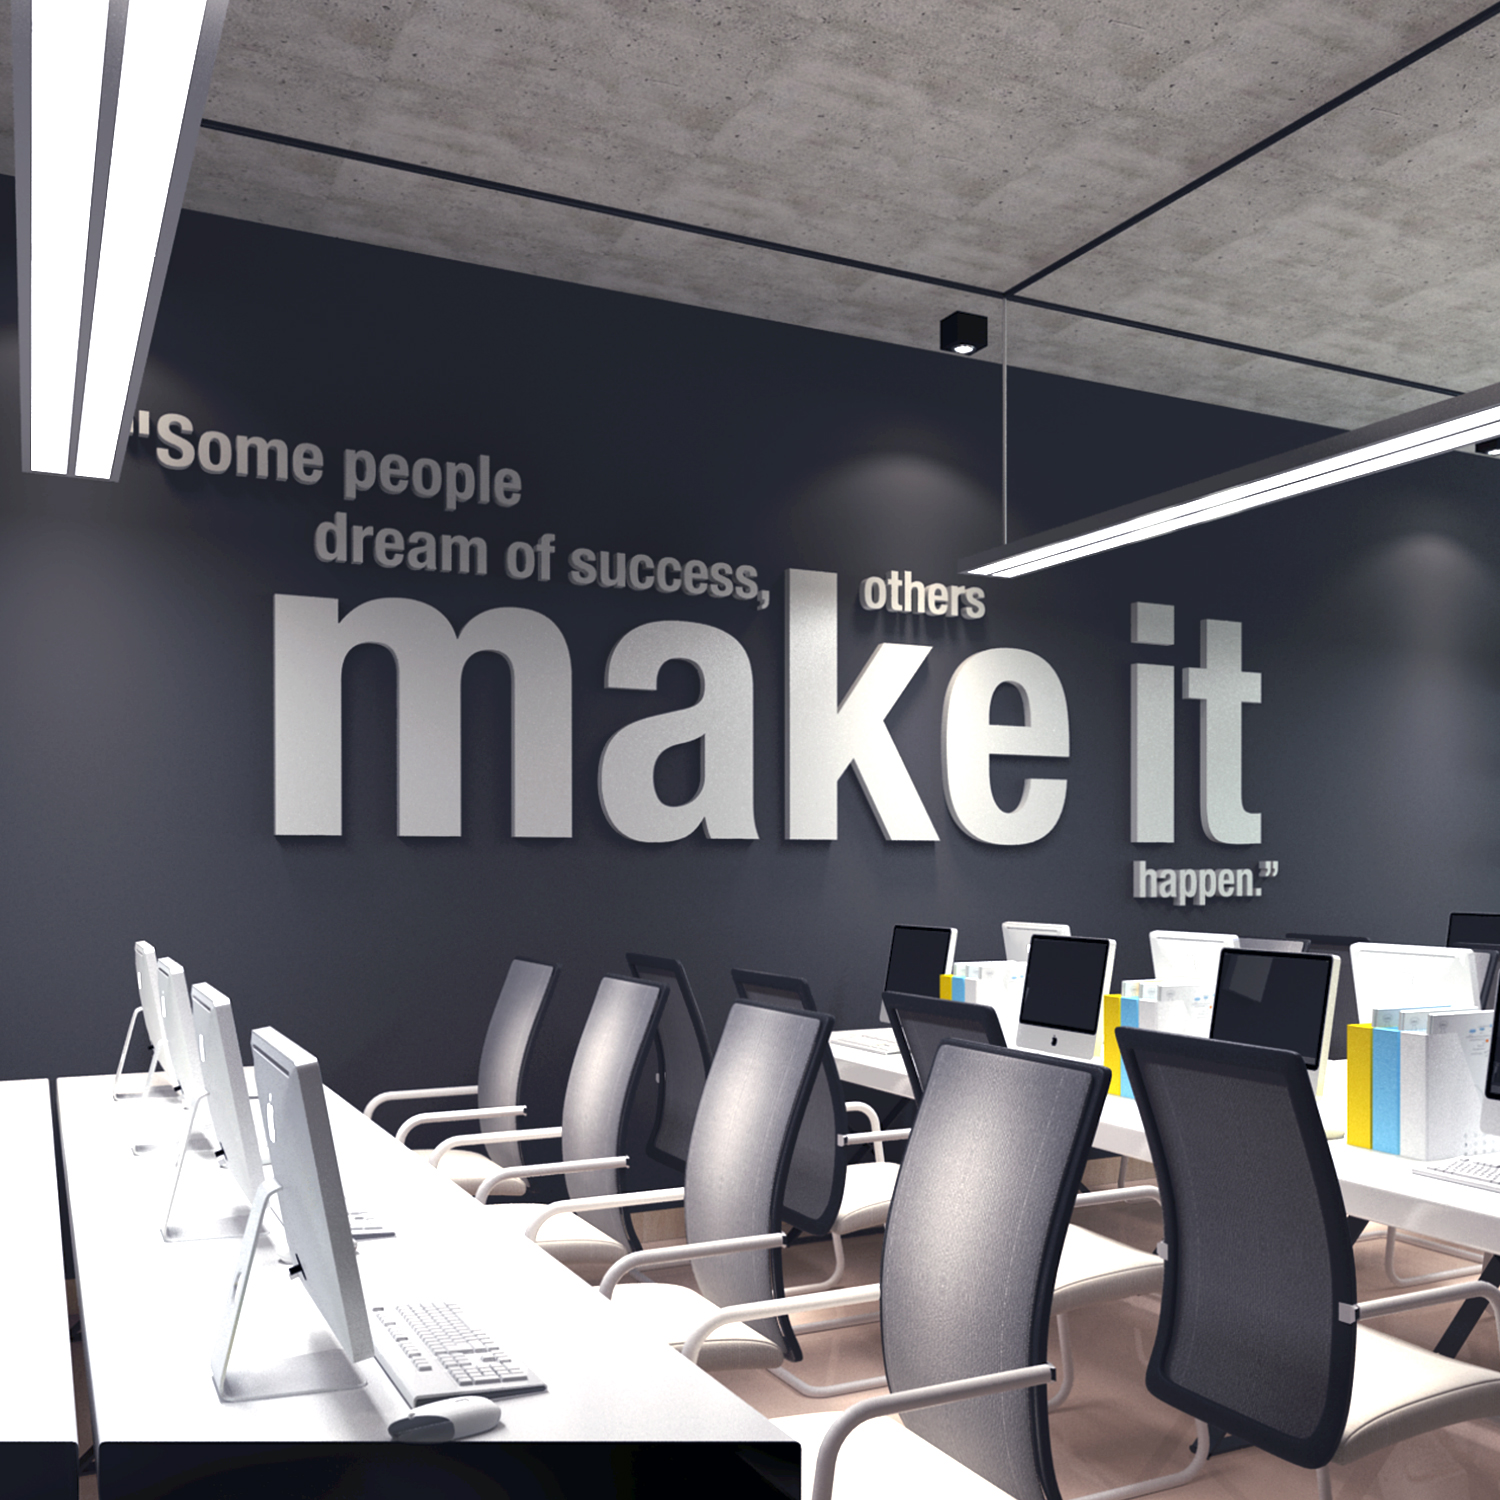 Make It Happen, Office Decor, 3D Wall Art, Decor   Apartment Therapy  Marketplace Classifieds